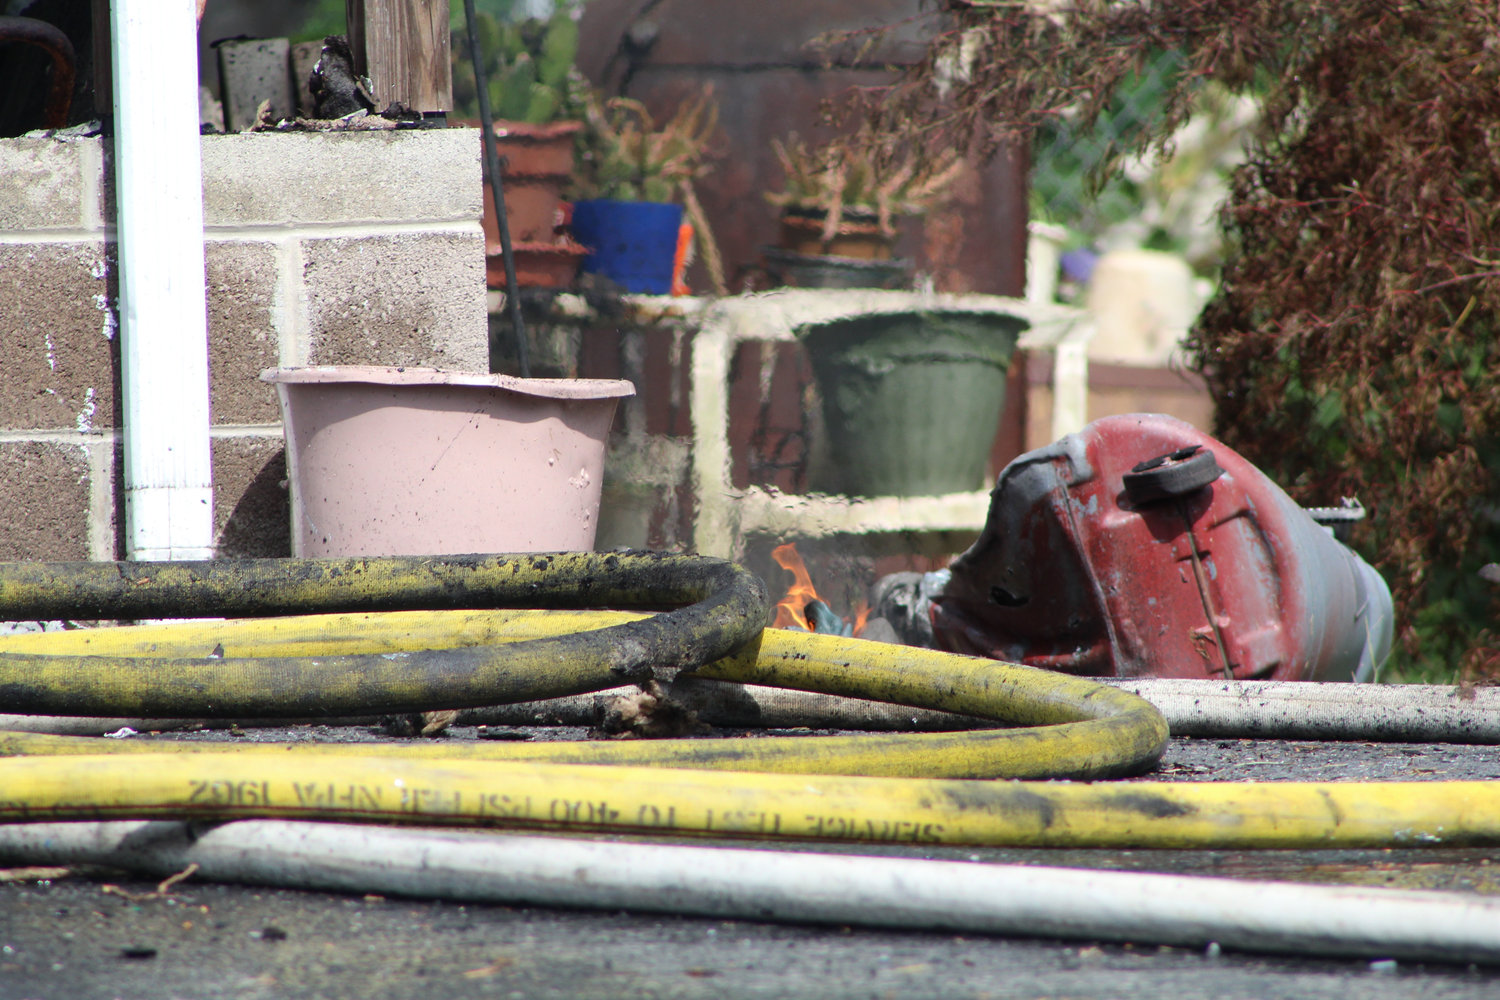 A flame was still lit outside of a home on the 1800 block of Water Street. Firefighters responded this afternoon.